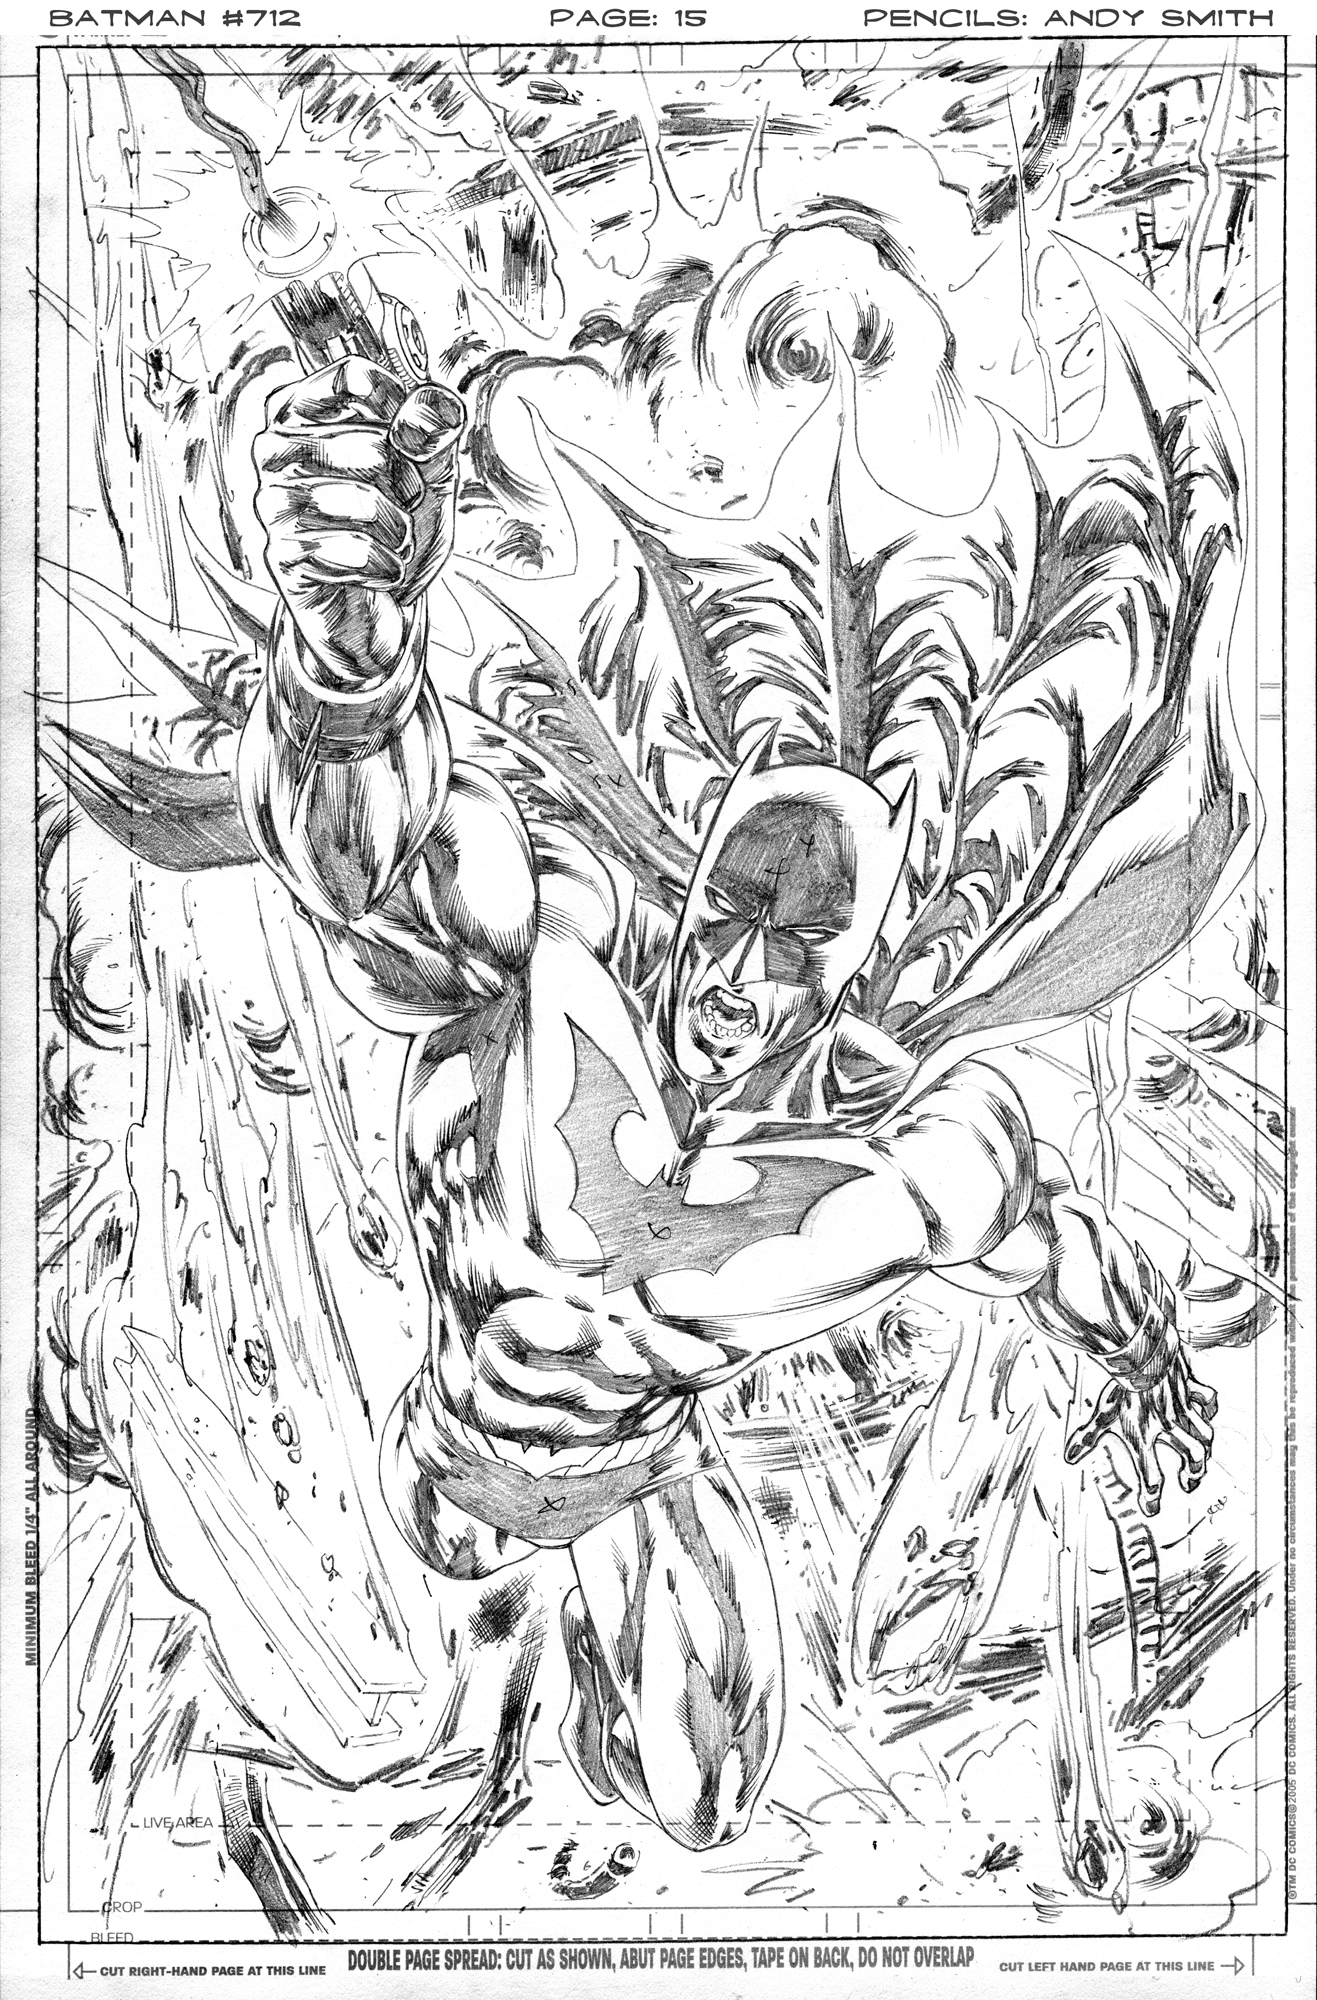 Batman 712 page 15 pencils